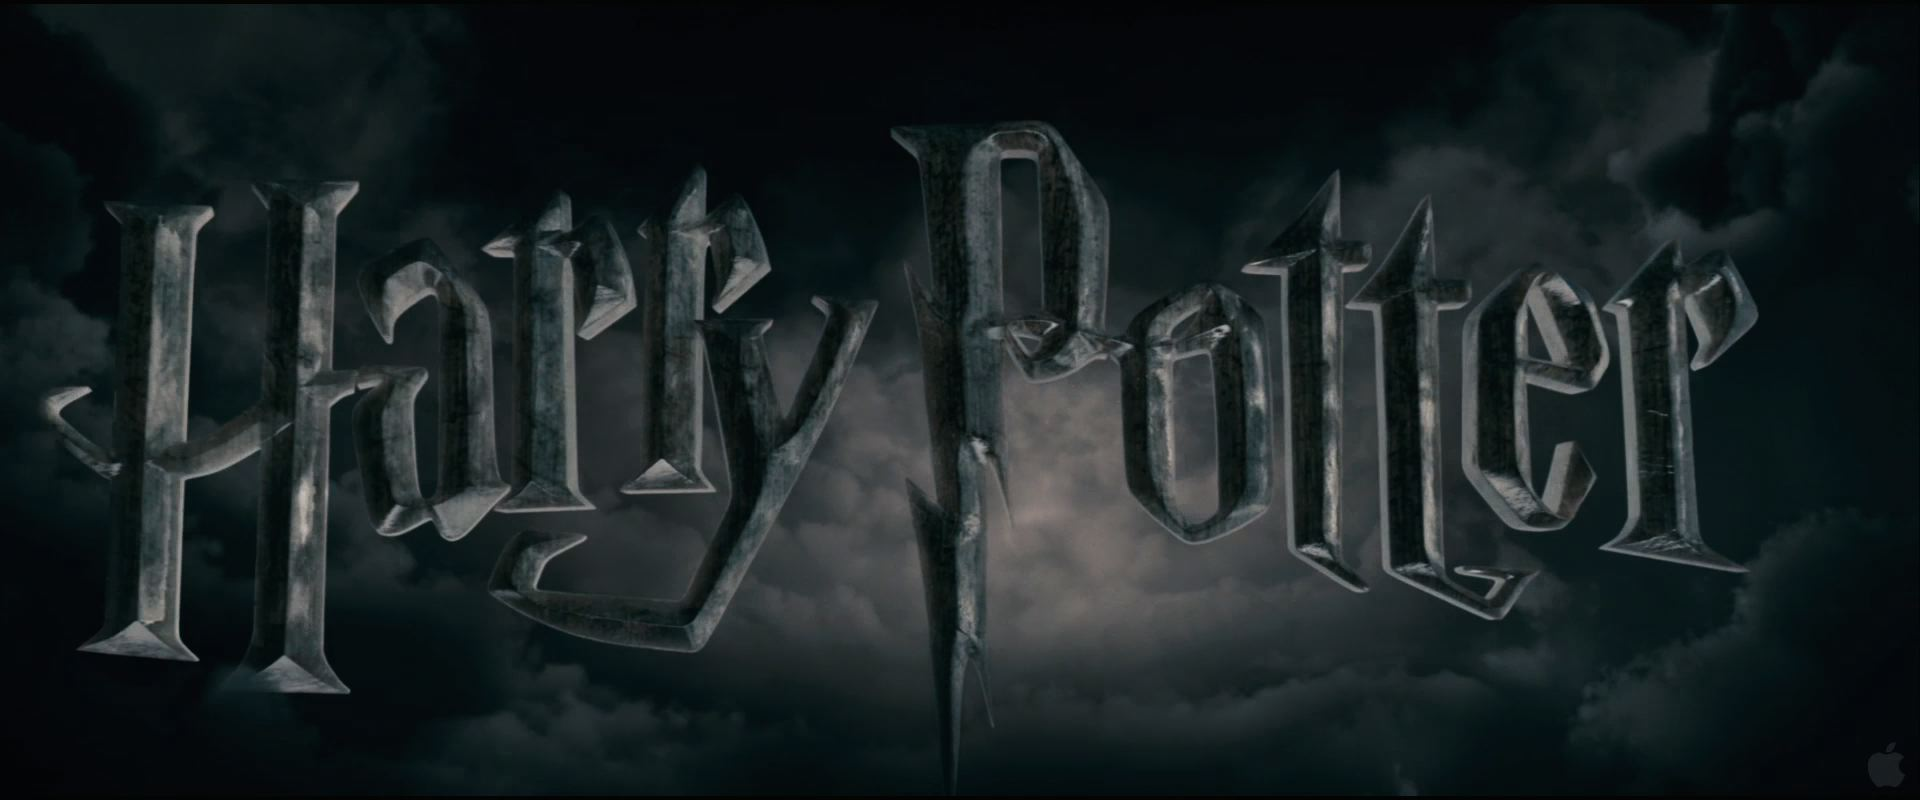 harry-potter-logo-wallpaper